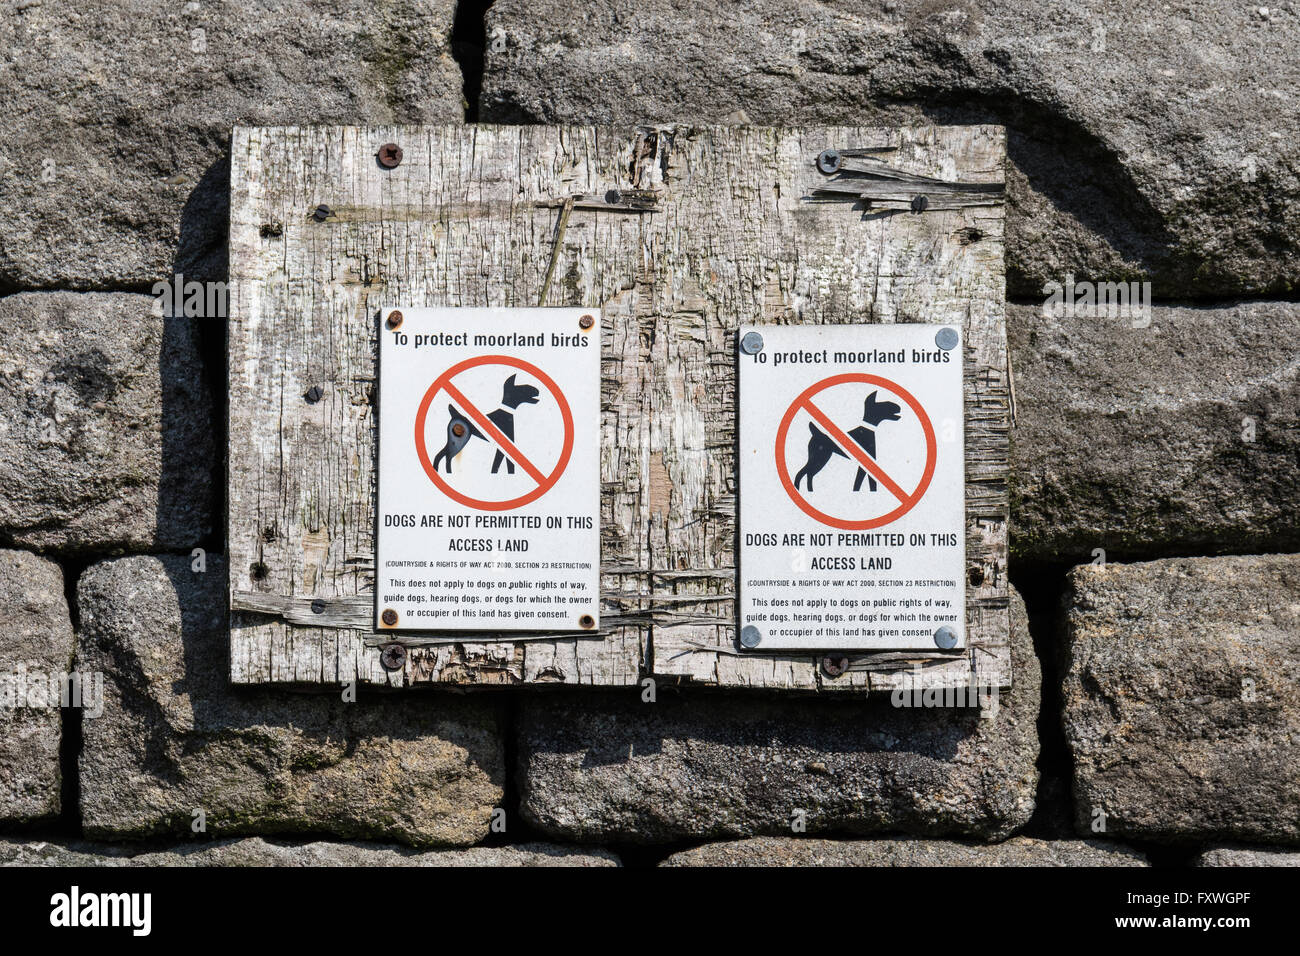 Moorland birds protecting sign - Stanage Edge, Derbyshire, UK - Stock Image